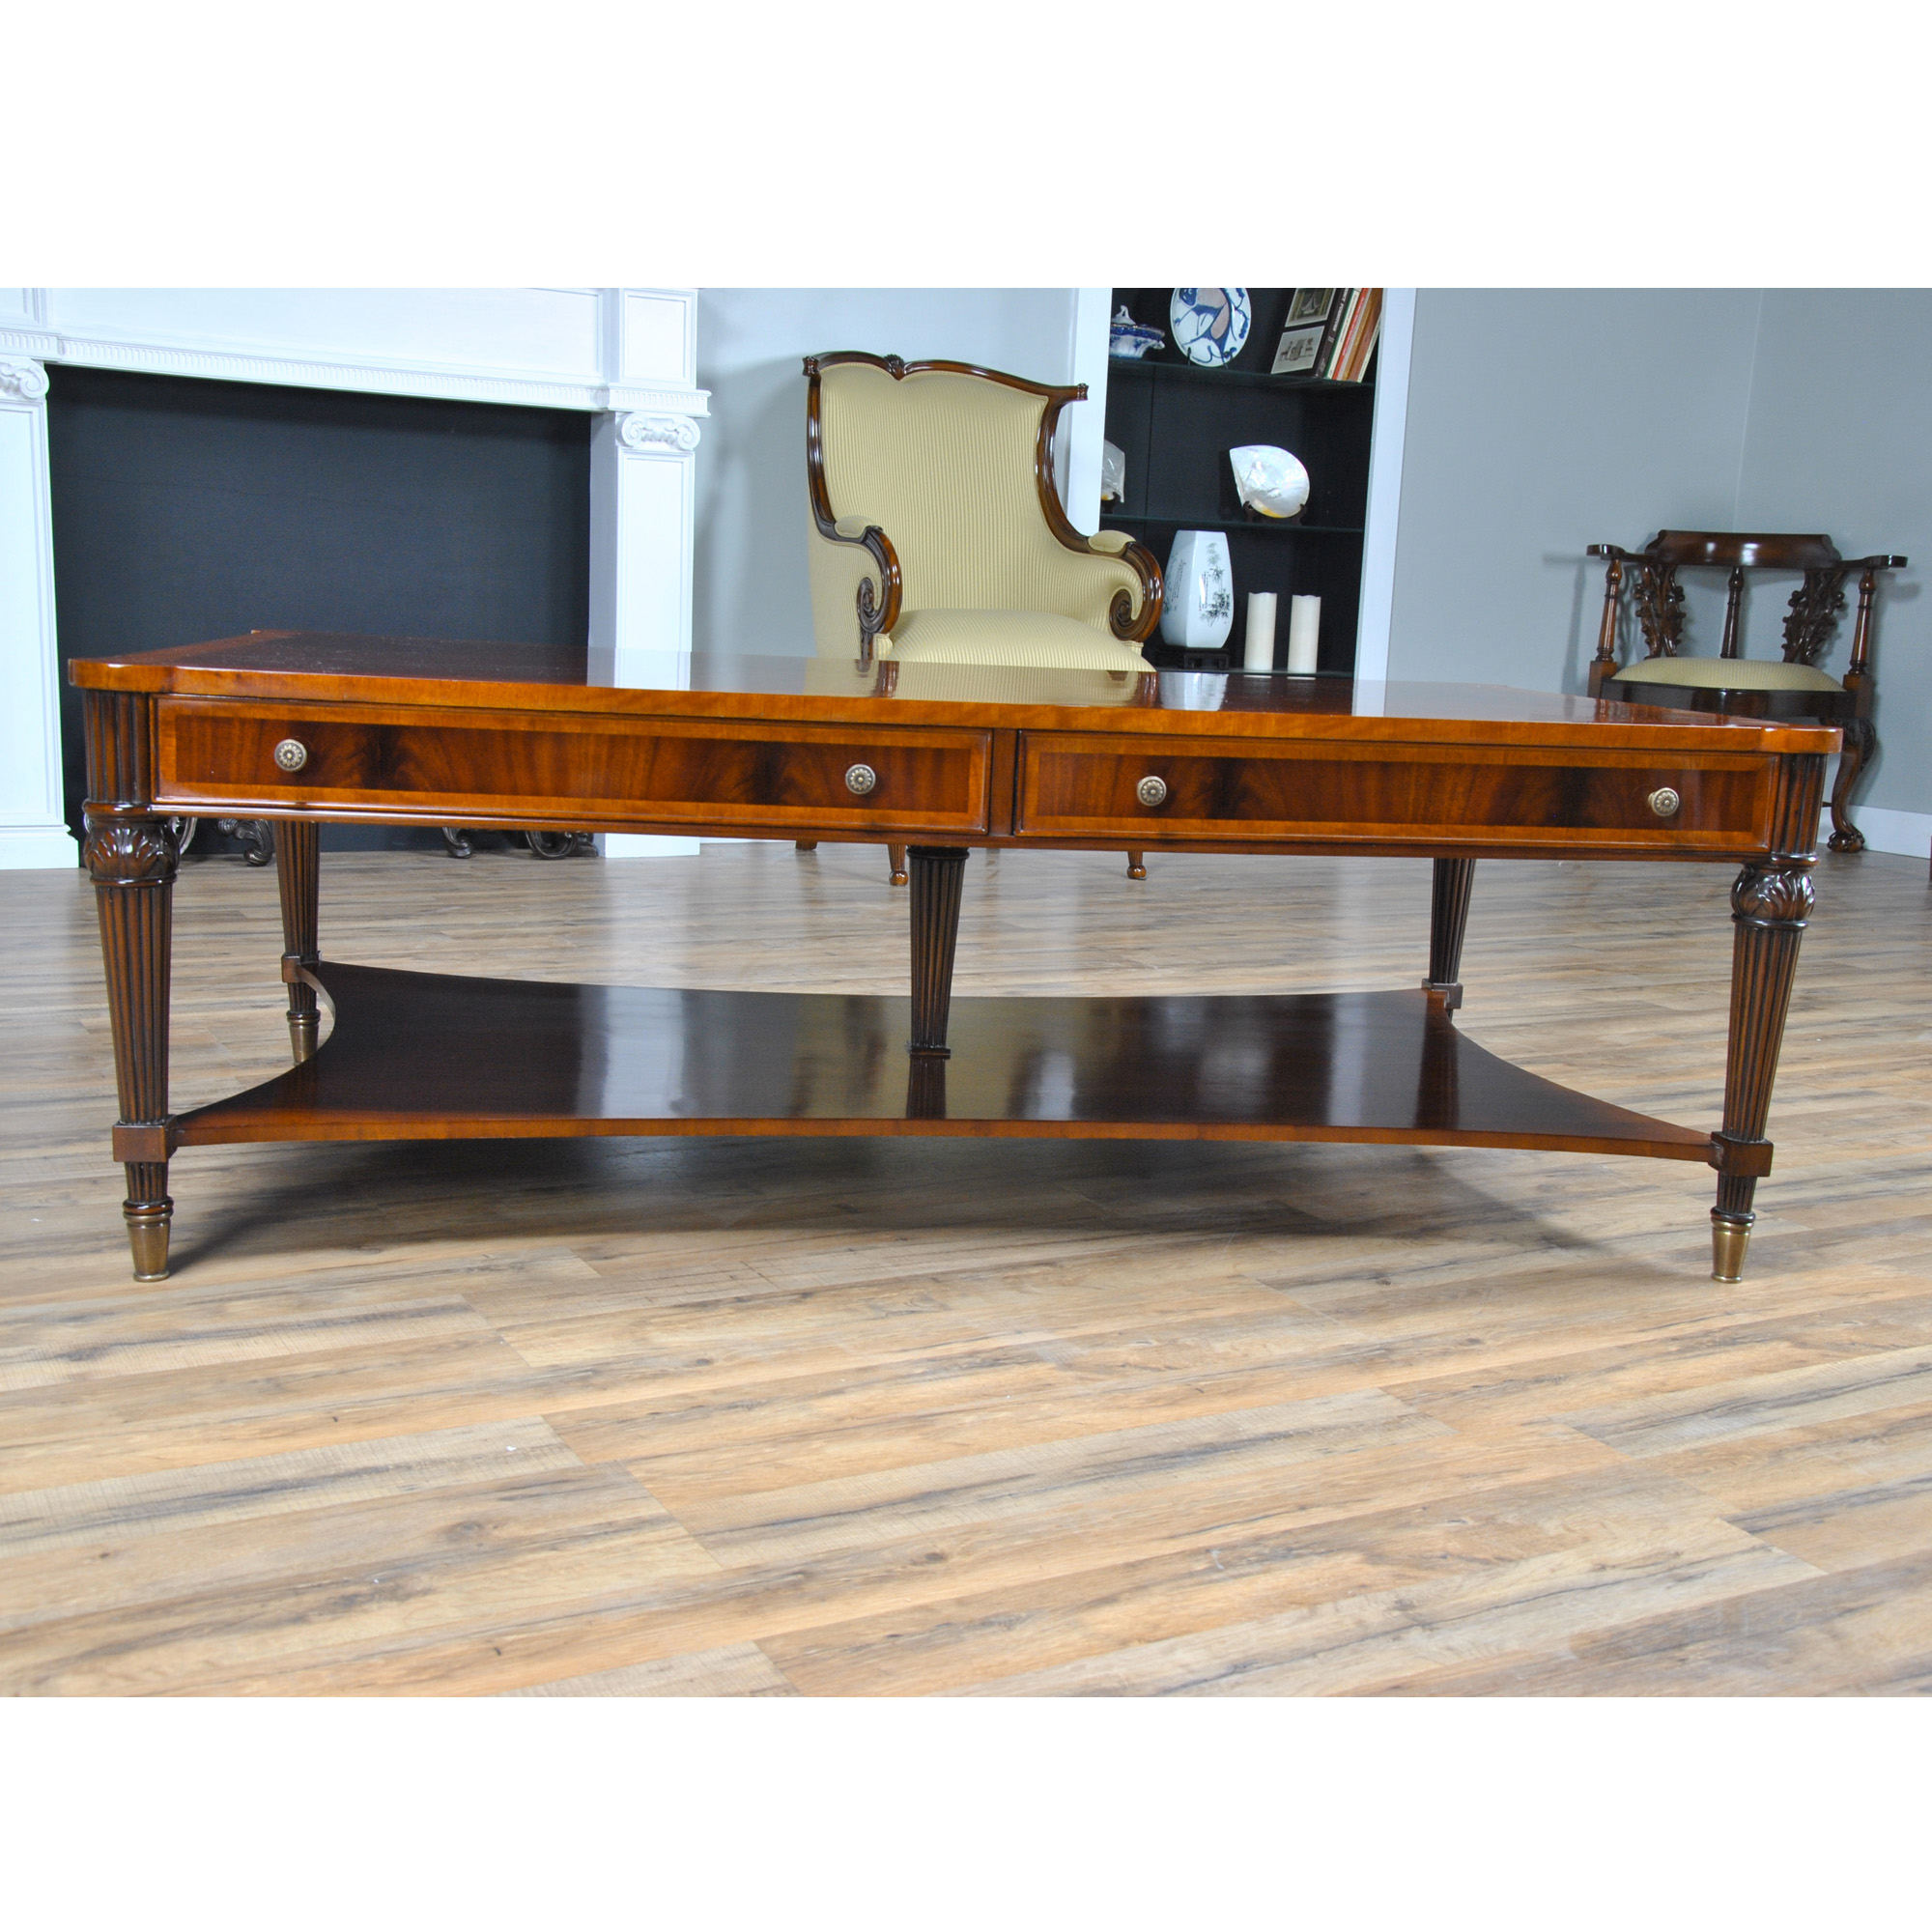 Large Coffee Table :: NSI155